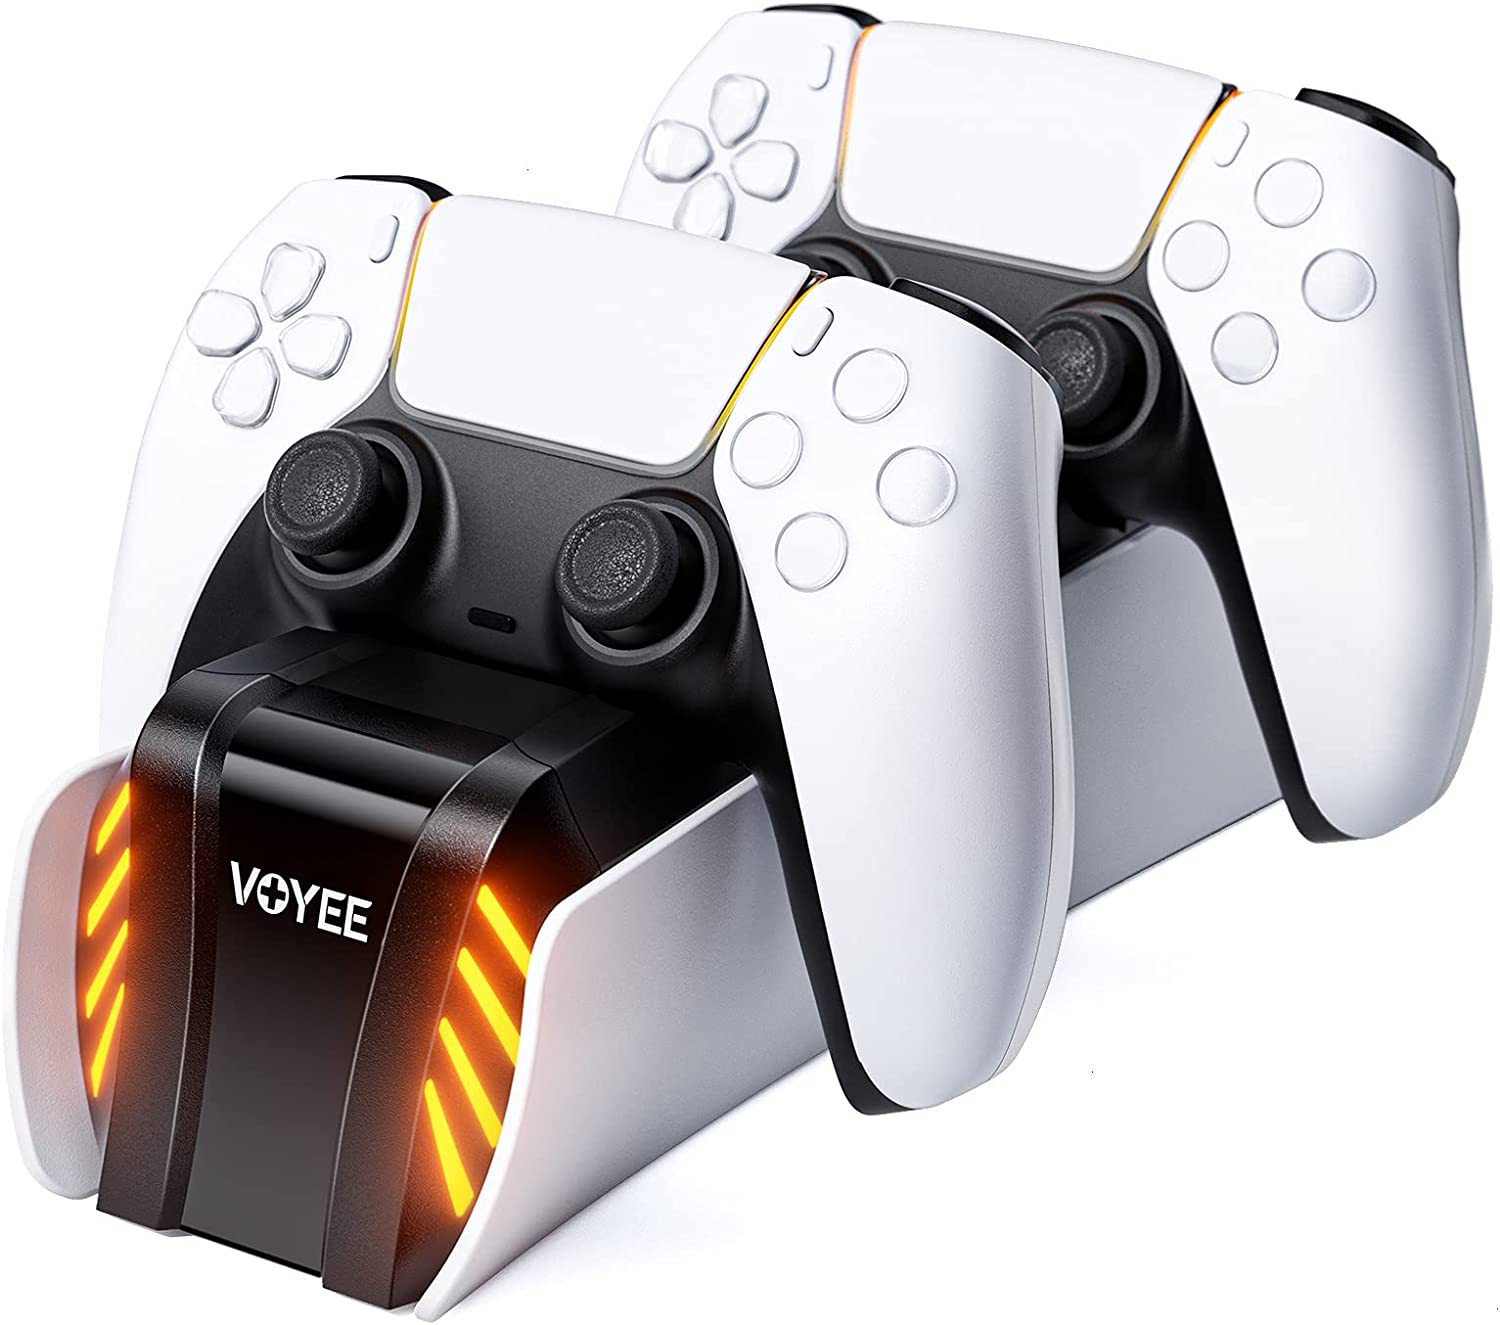 VOYEE PS-5 Fast Charging Station Selling rankings Free shipping New Stati Controller